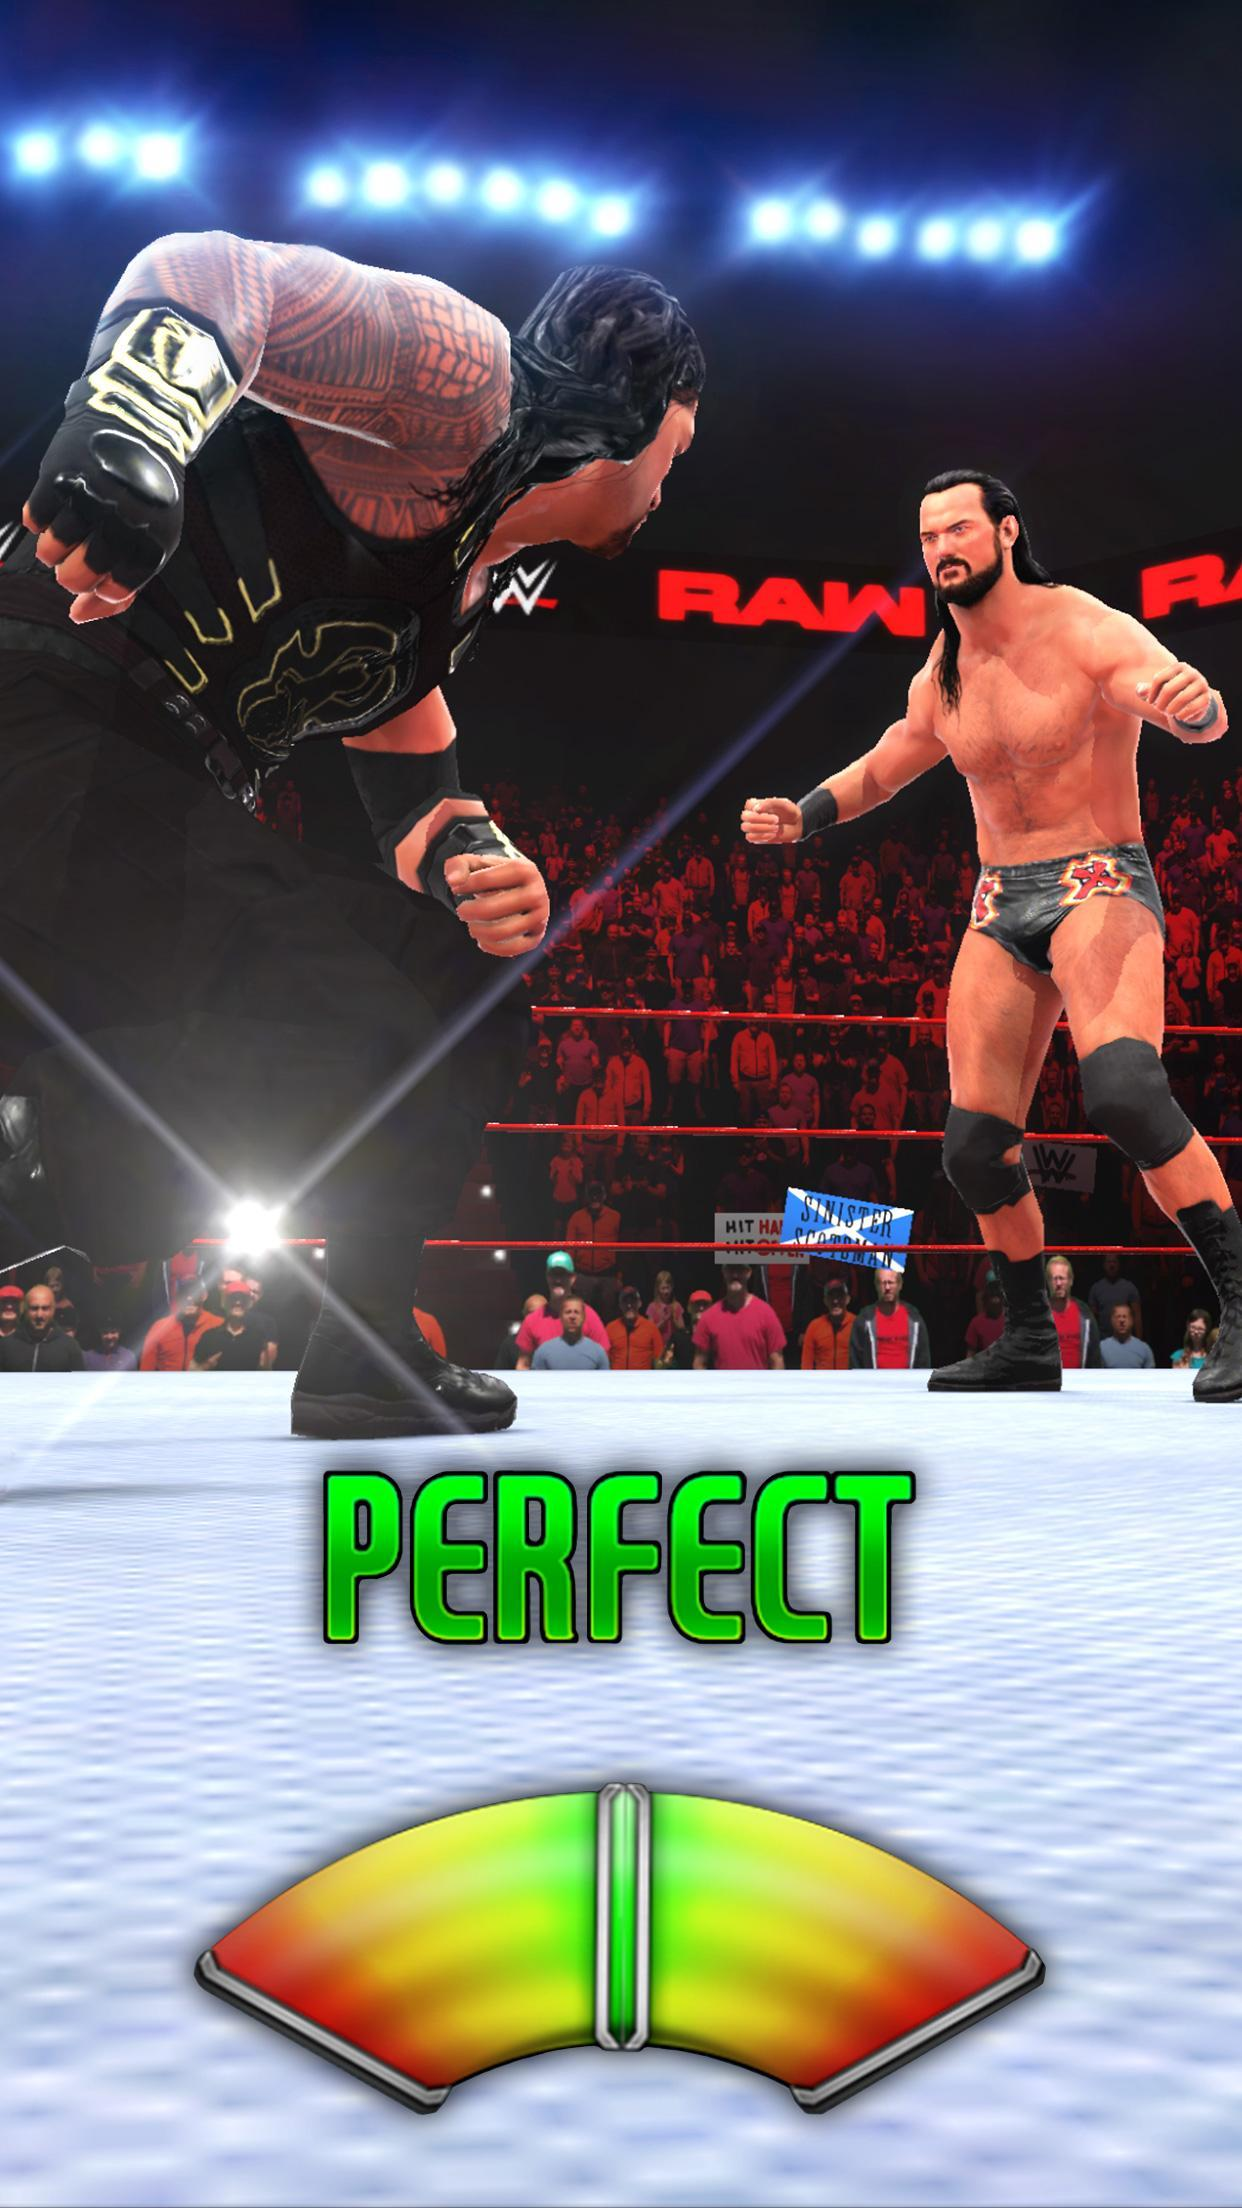 WWE Universe for Android - APK Download